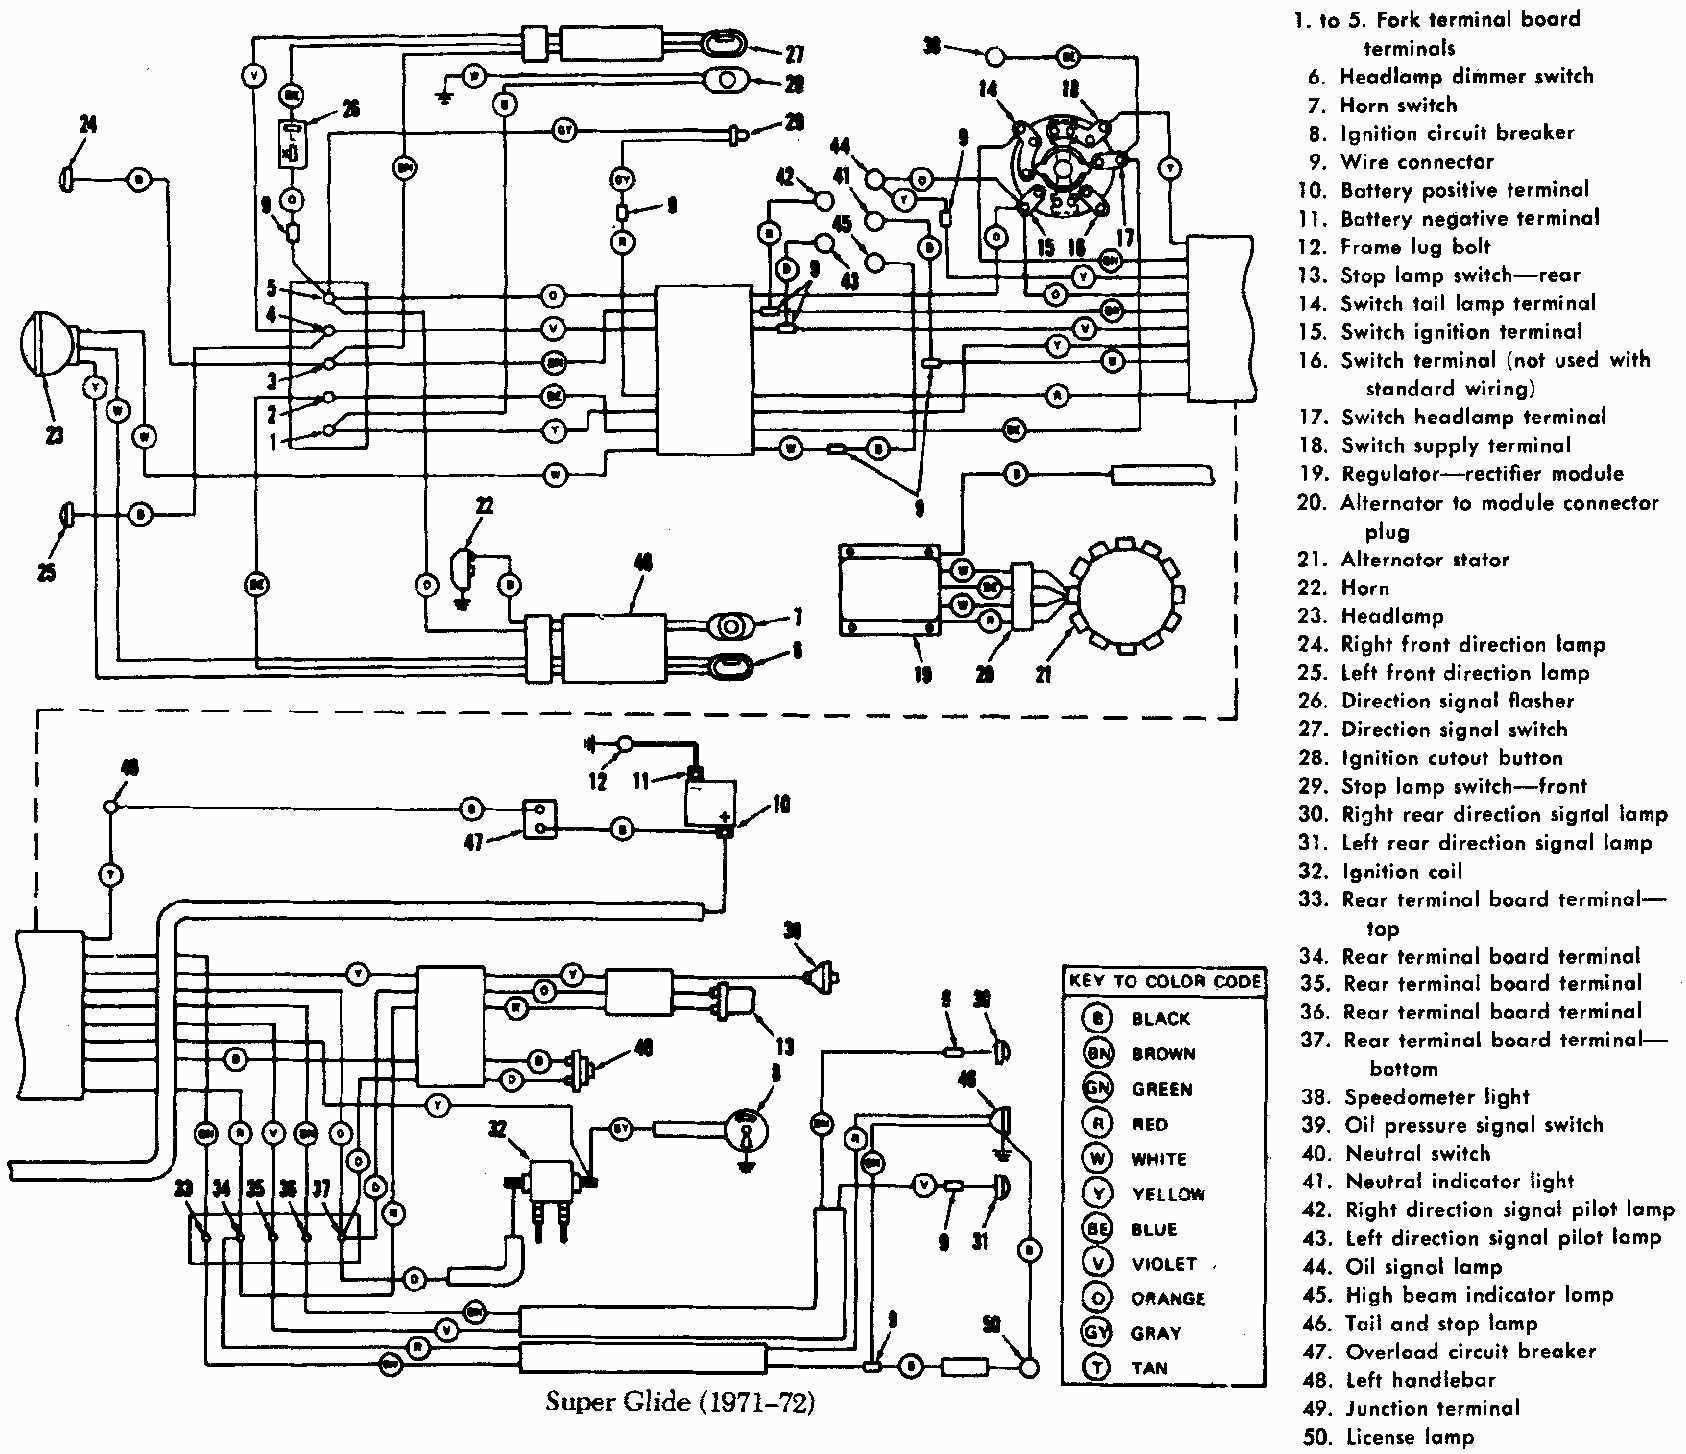 1971 Chevelle Wiring Diagram 66 Chevelle Wiring Diagram Wiring Diagram toolbox Of 1971 Chevelle Wiring Diagram 55 Chevrolet Wiring Diagram